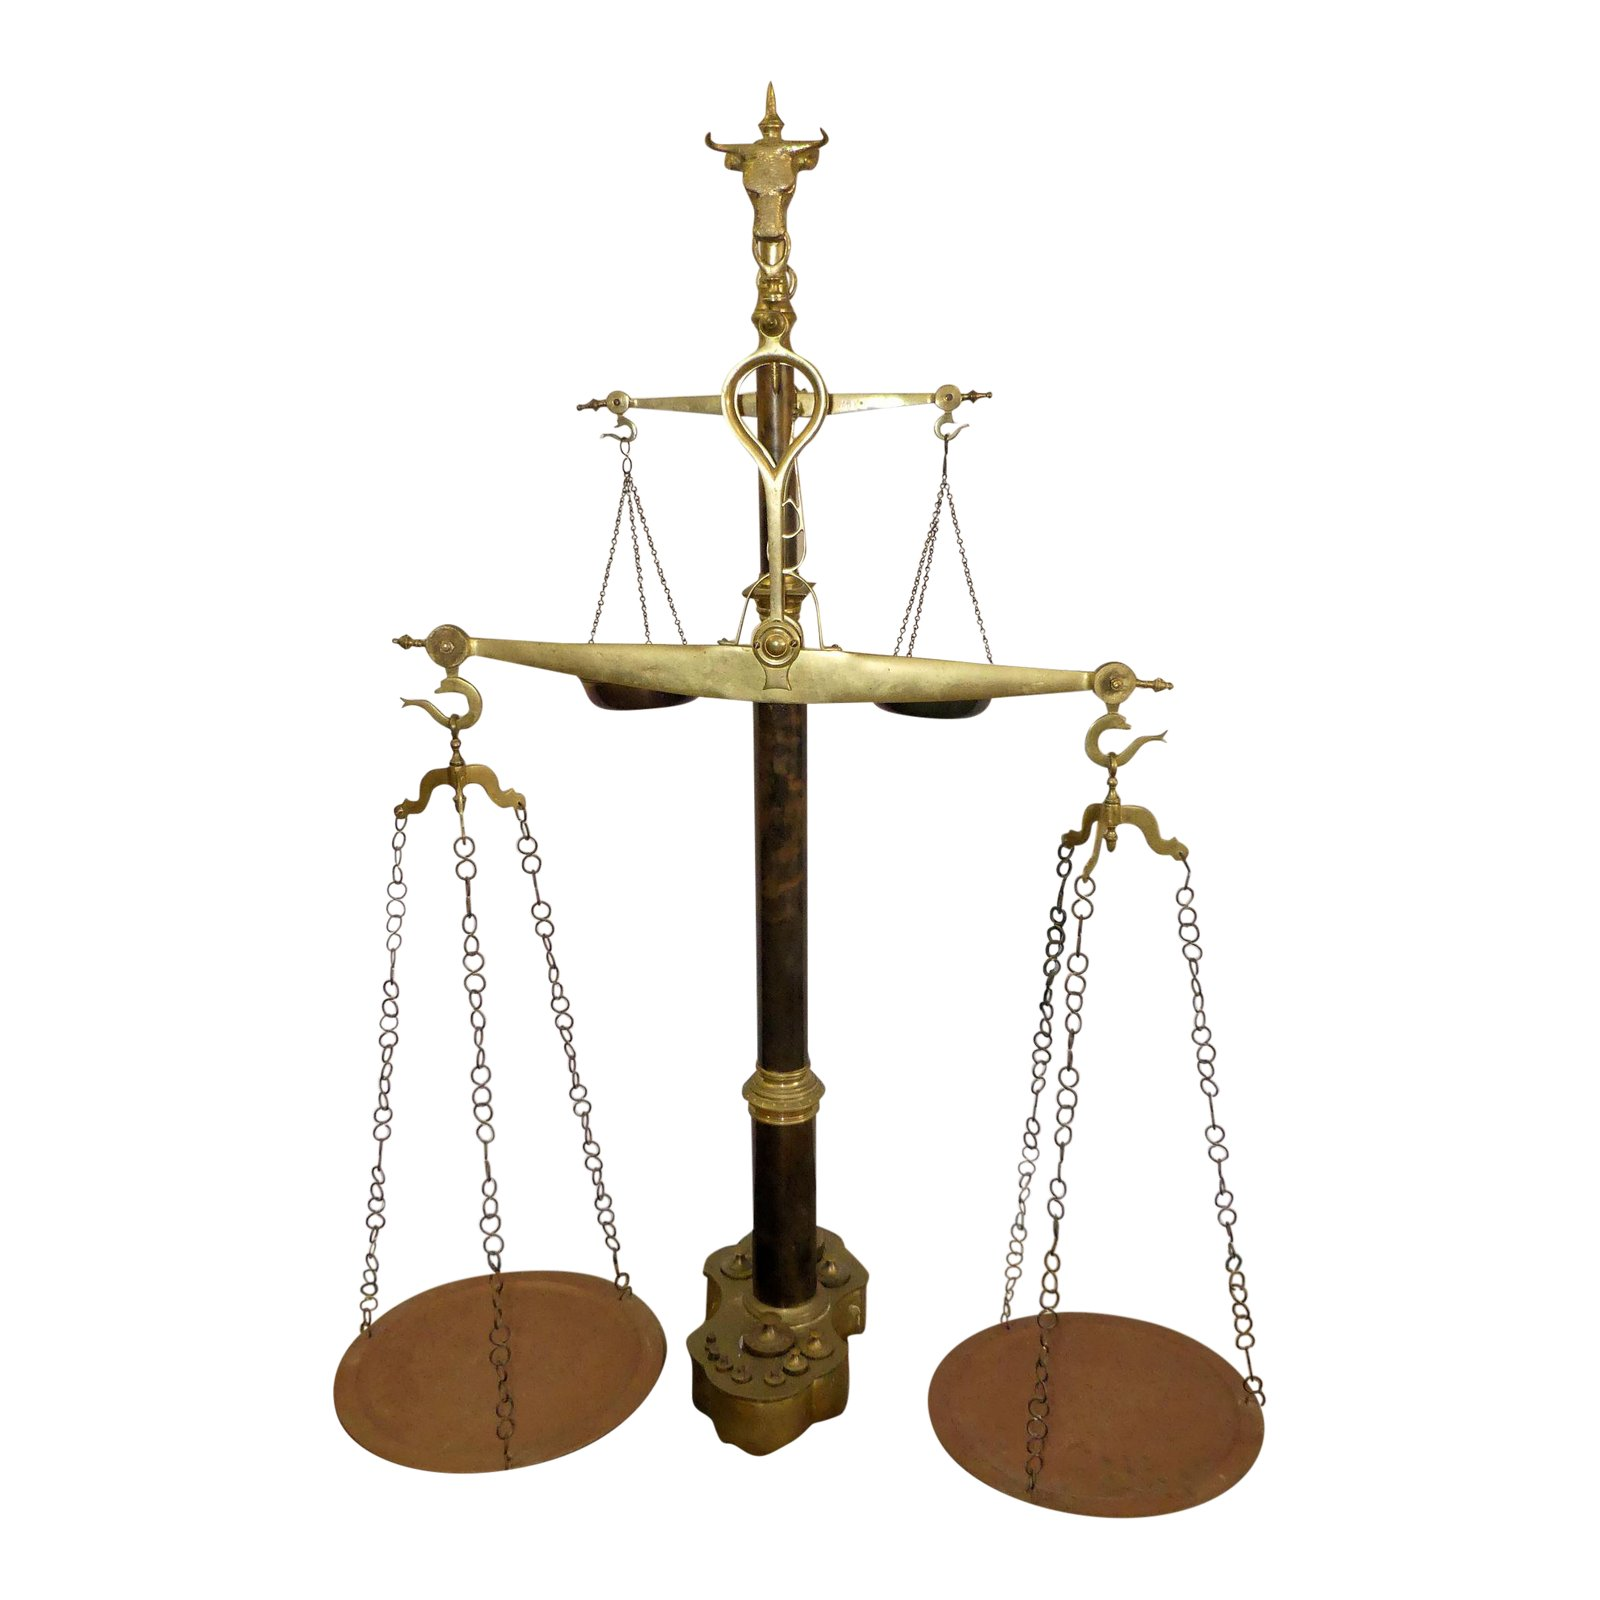 Large 2-Tier Brass Butcher's Shop Scale $2,995